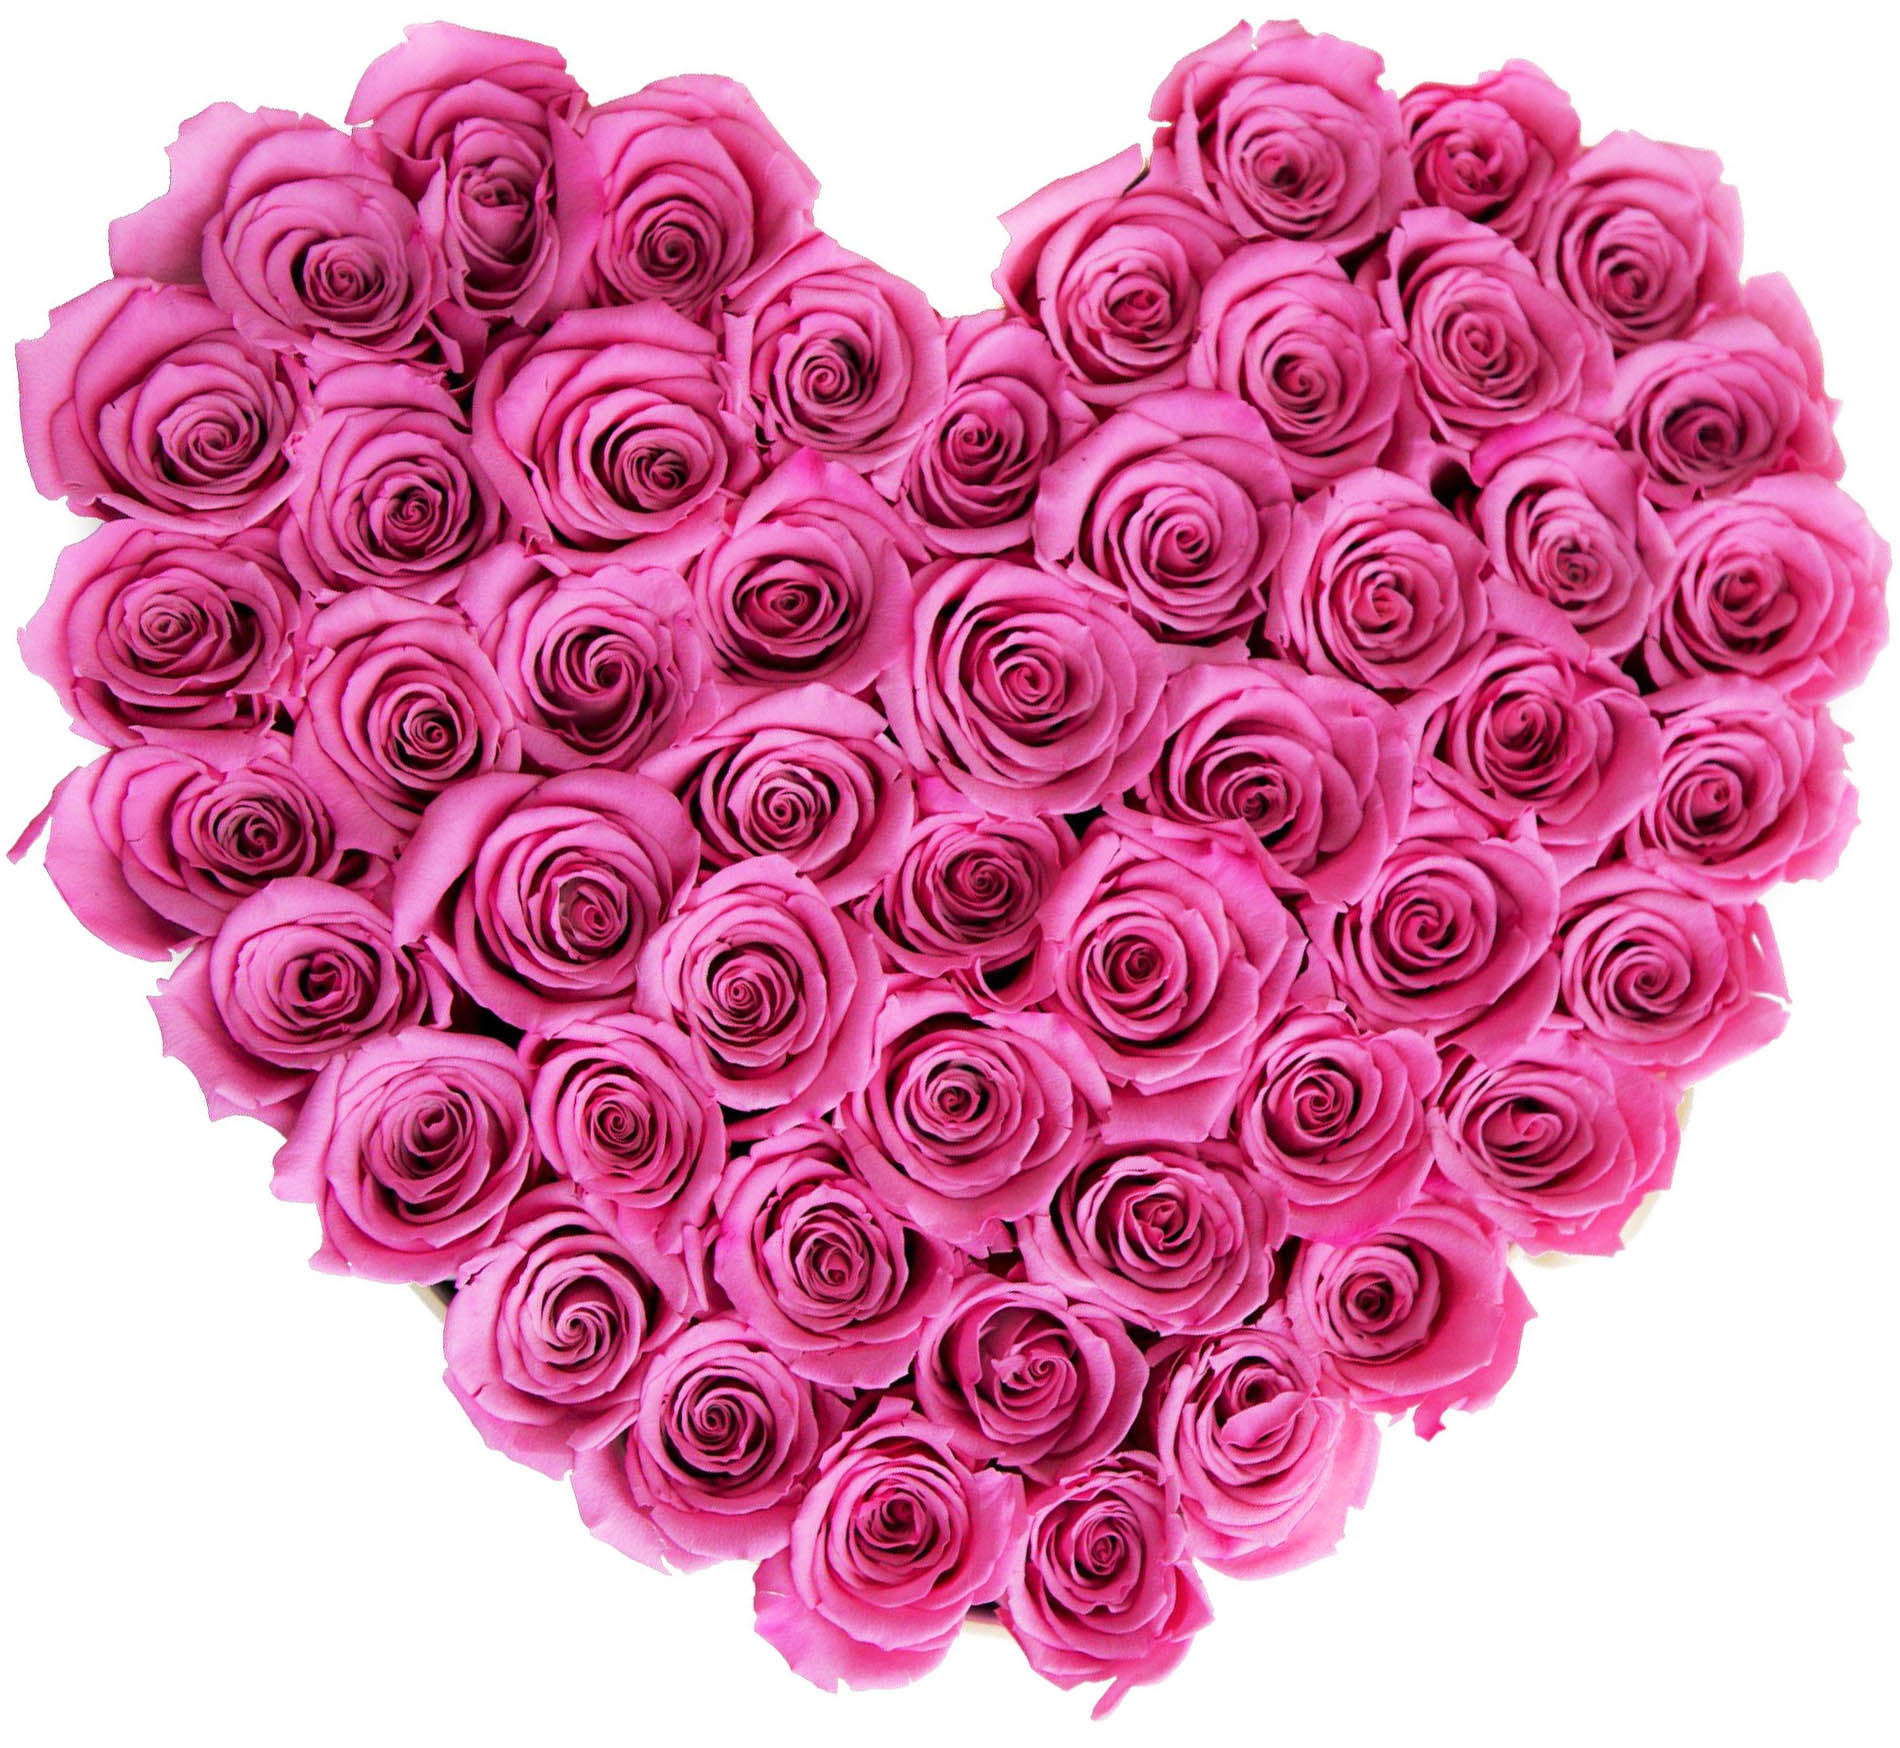 Heart Shaped 40 Stems Pink Rose Bouquet Online Order To Philippines